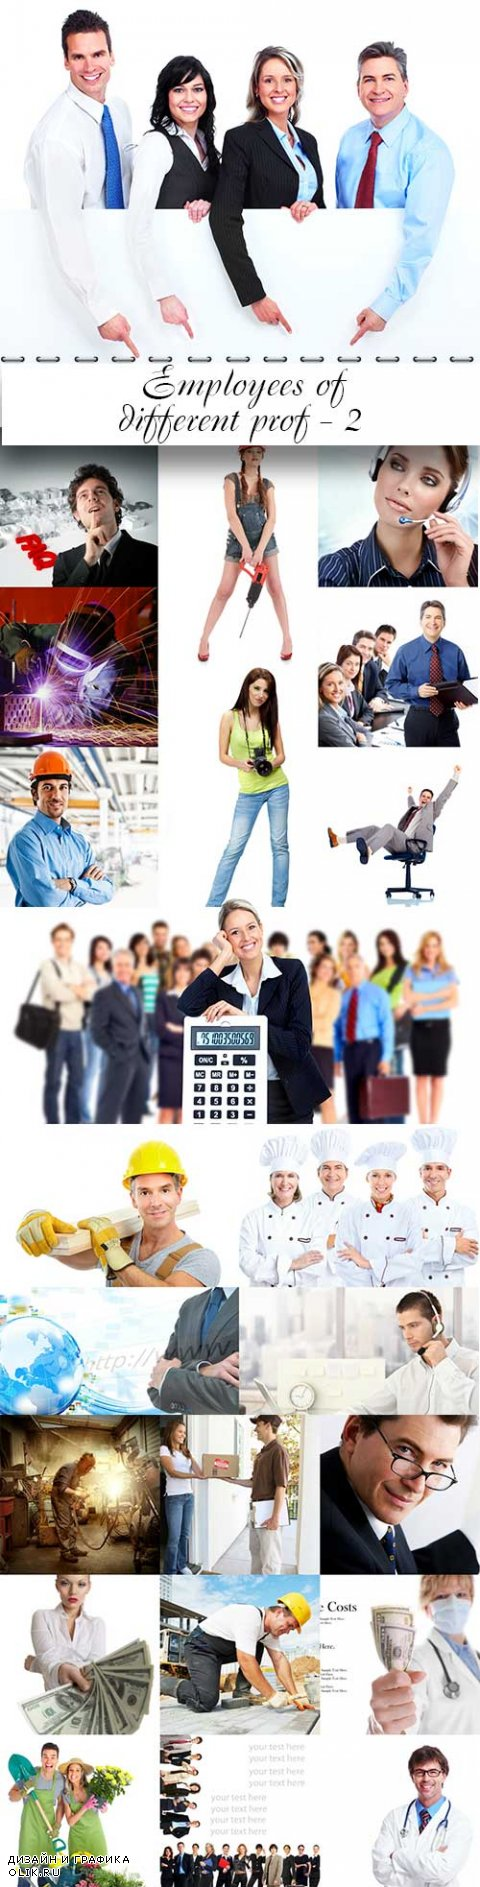 Employees of different profile - 2